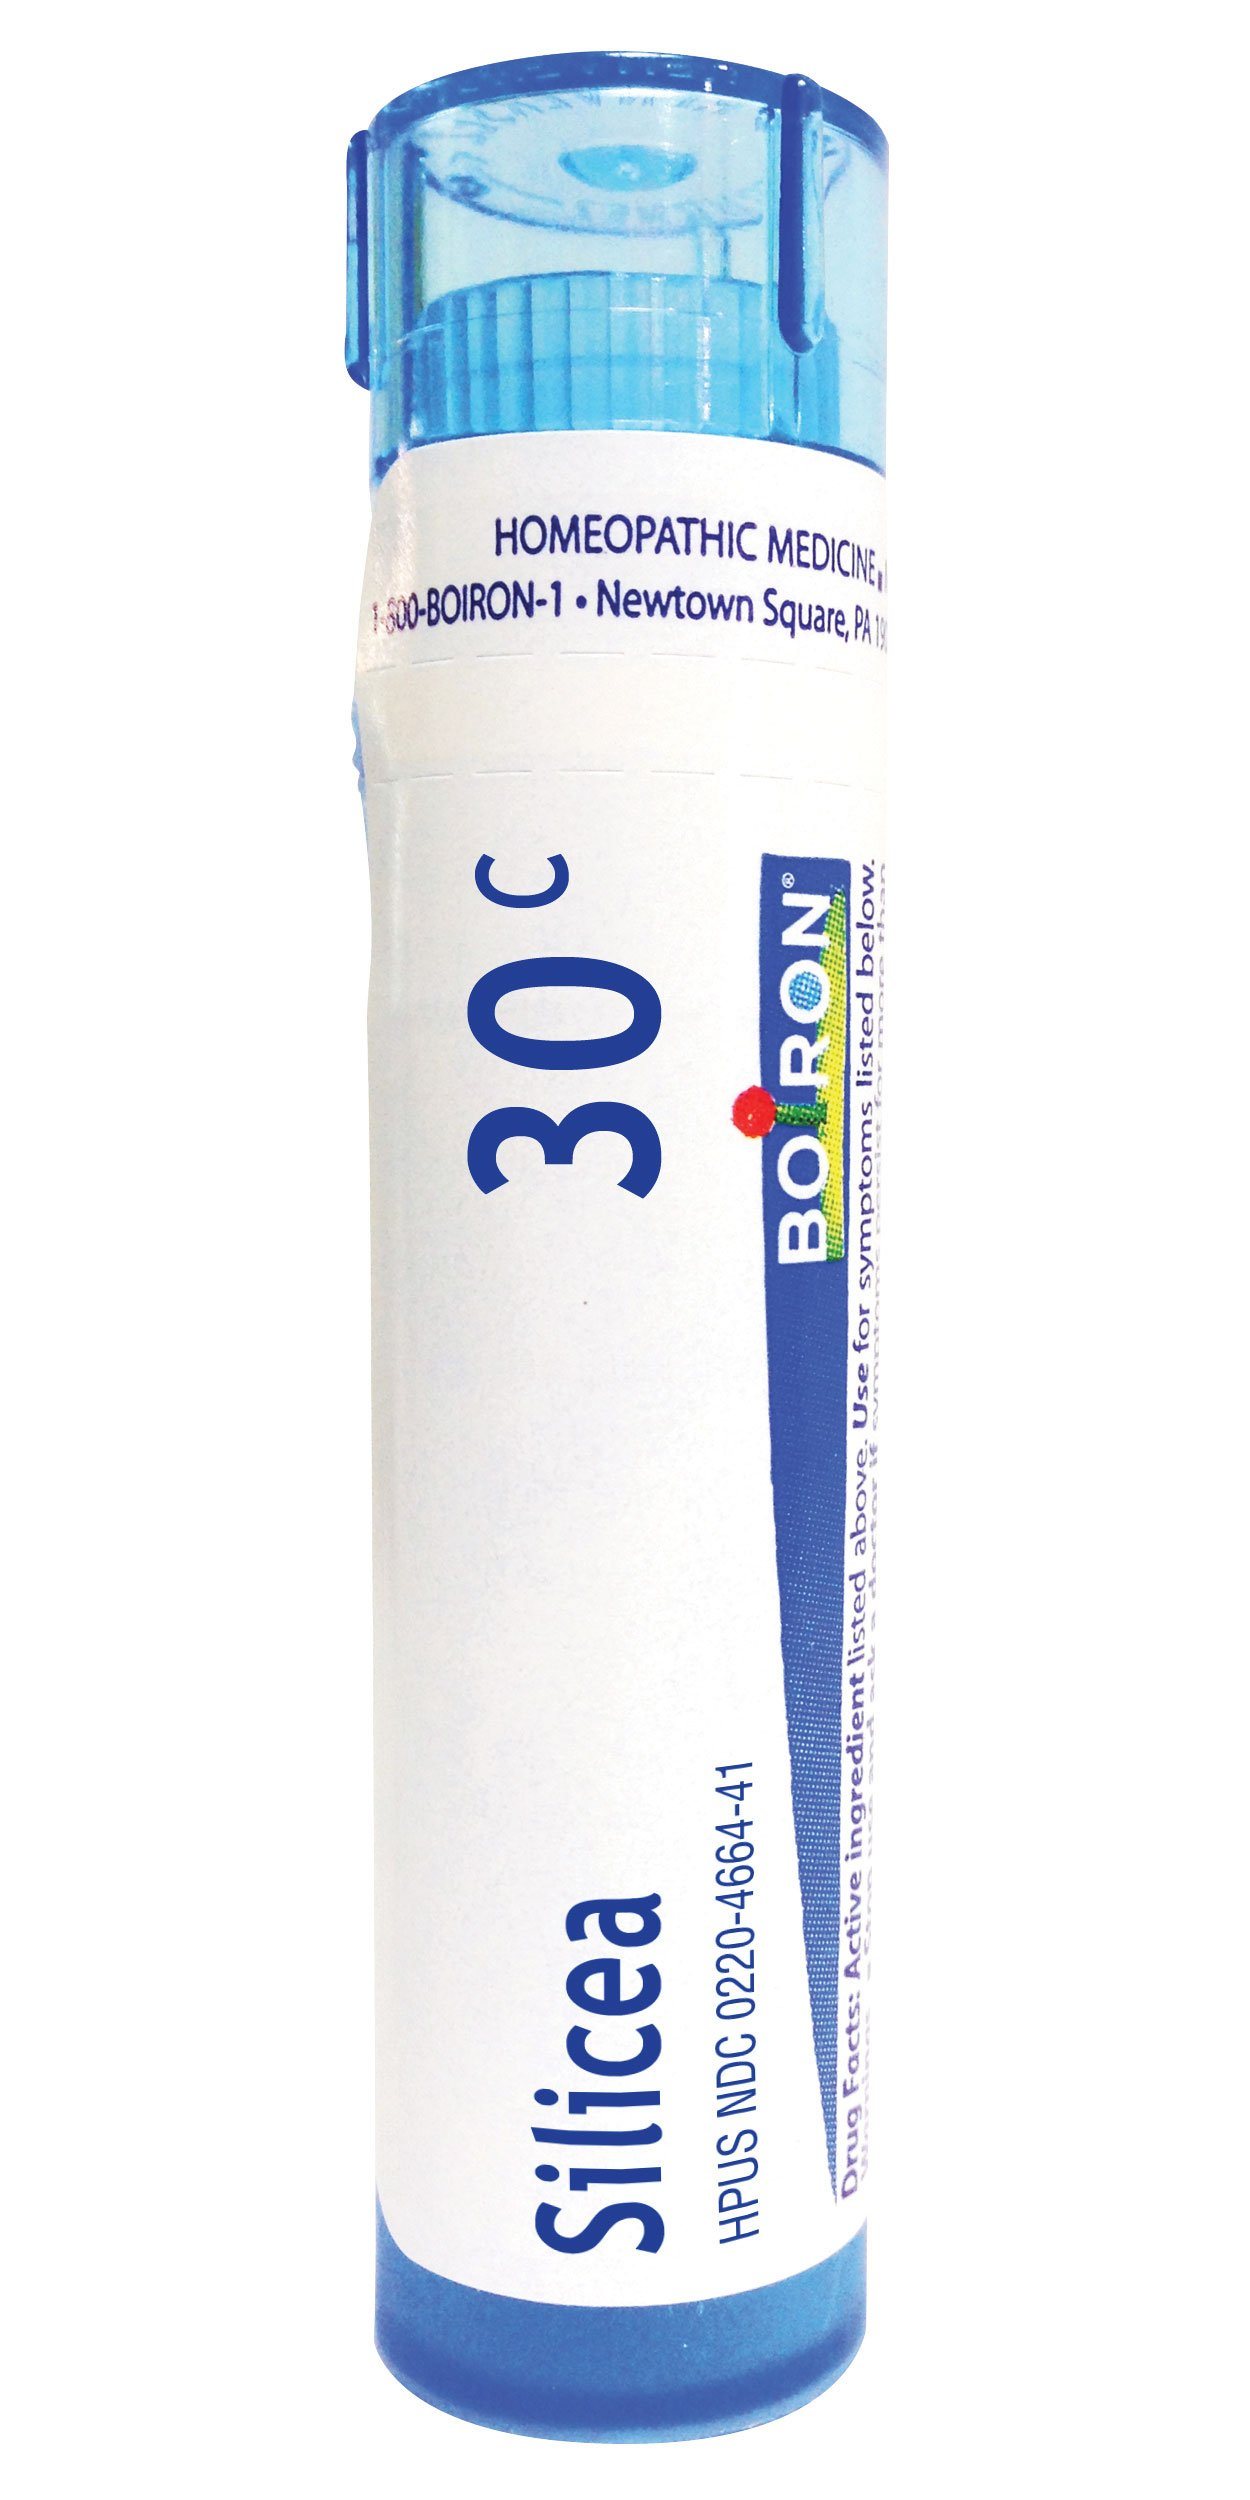 Boiron Homeopathic Medicine Silicea, 30C Pellets, 80-Count Tubes (Pack of 5) by Boiron